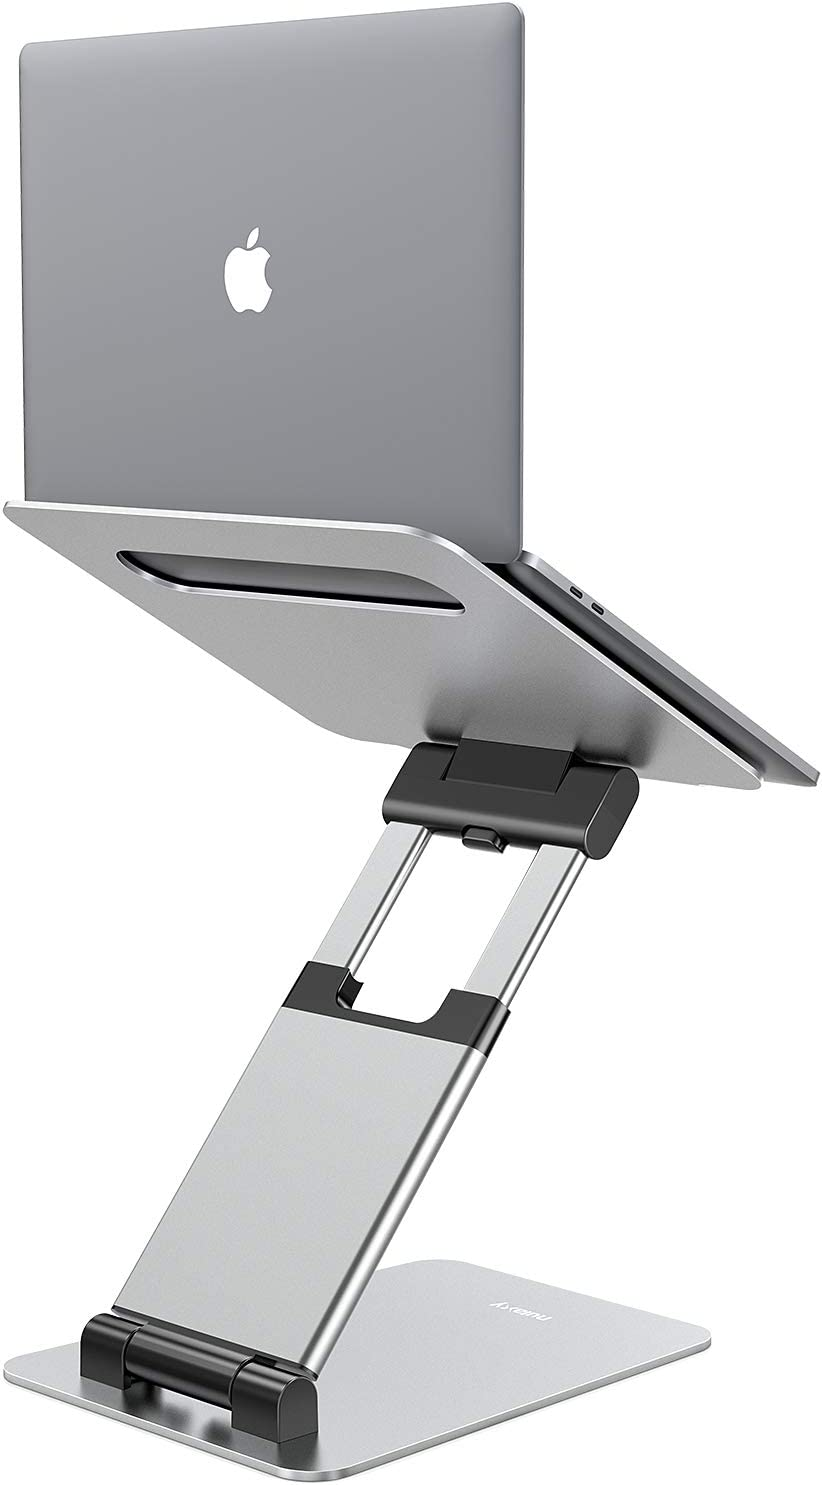 "Nulaxy Laptop Stand, Ergonomic Sit to Stand Laptop Holder Convertor, Adjustable Height from 2.1"" to 13.8"", Supports up to 22lbs, Compatible with MacBook, All Laptops Tablets 10-17"" - Silver"